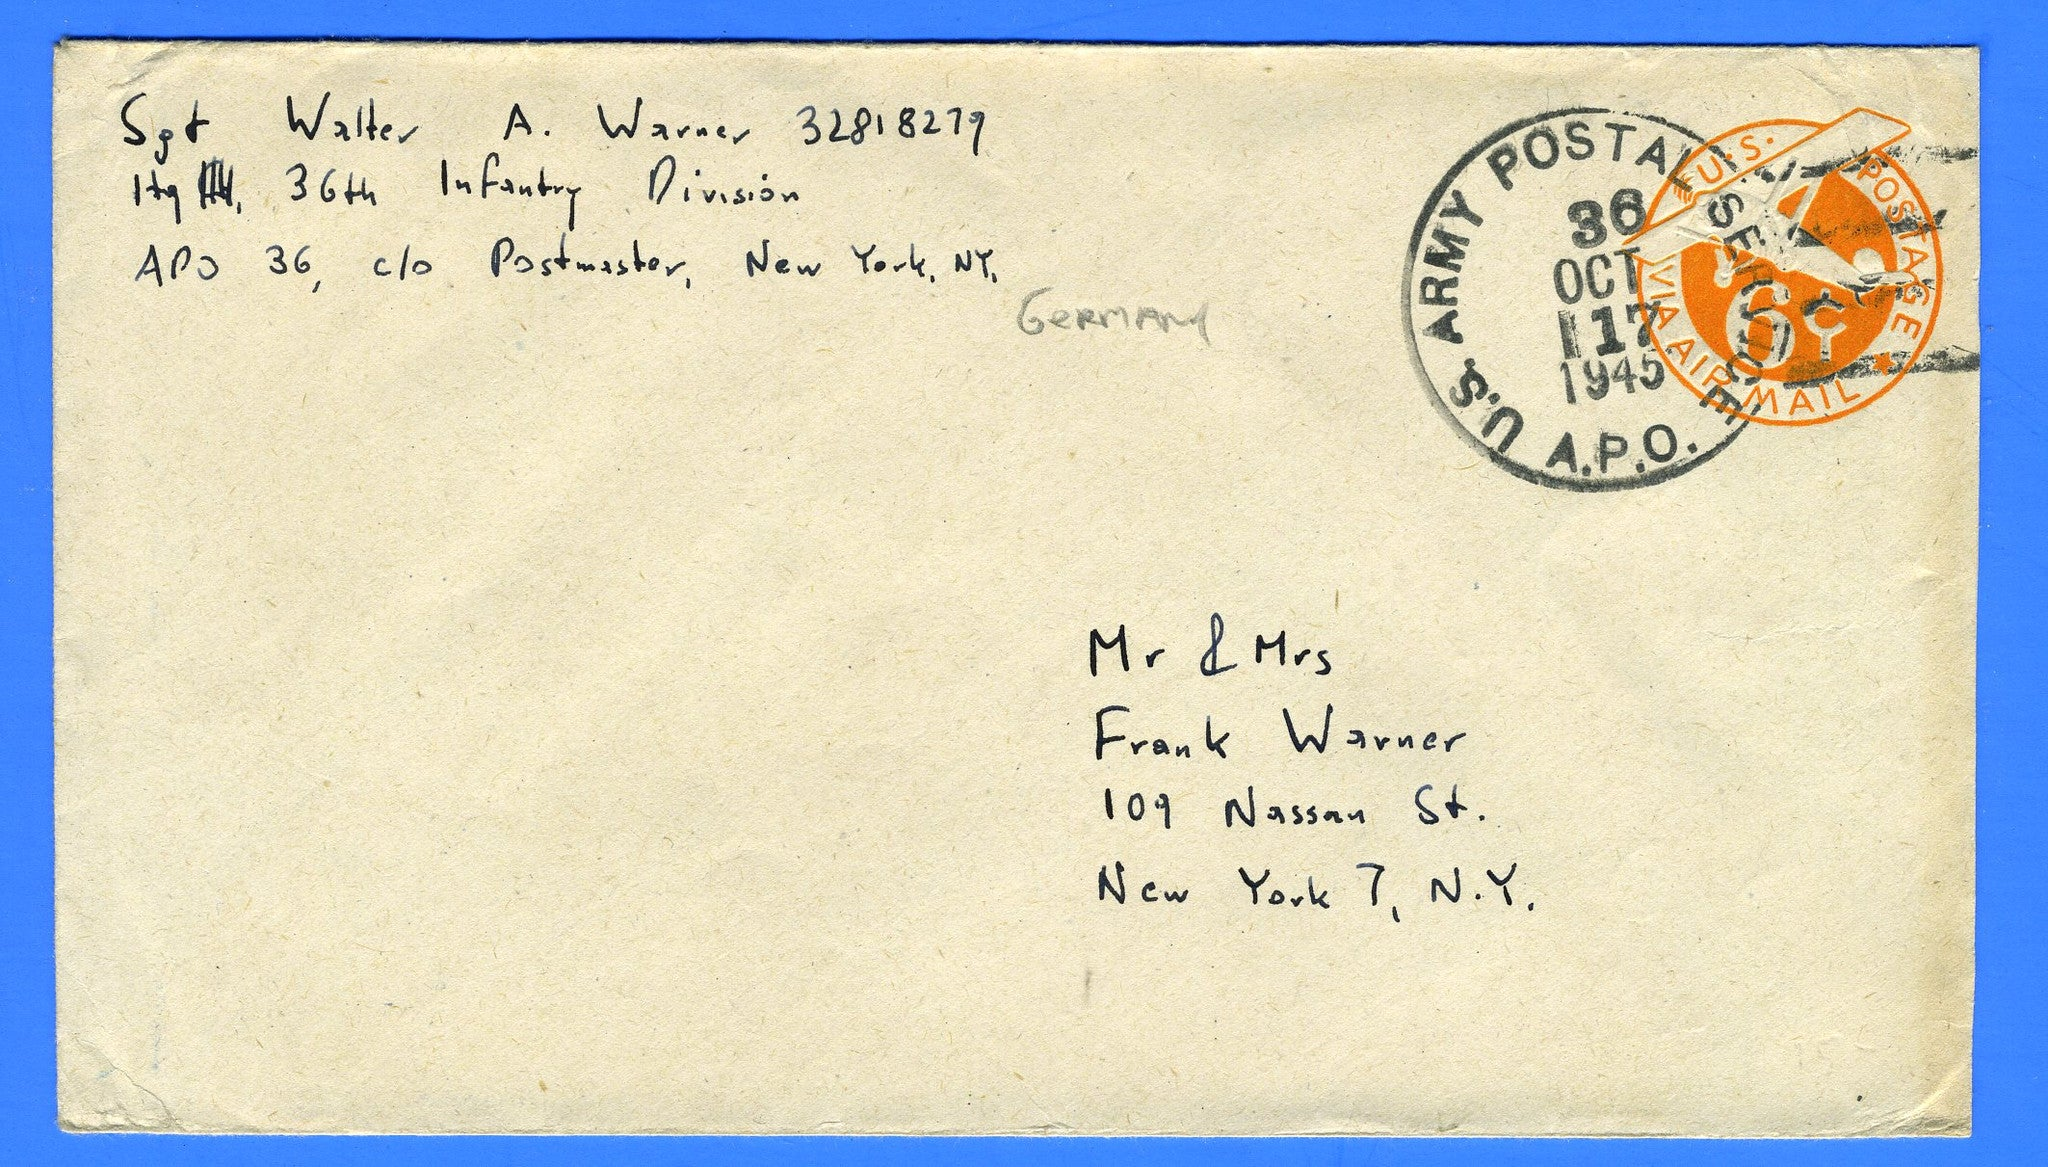 Soldier's Mail APO 36 Geislingen, Germany October 17, 1945